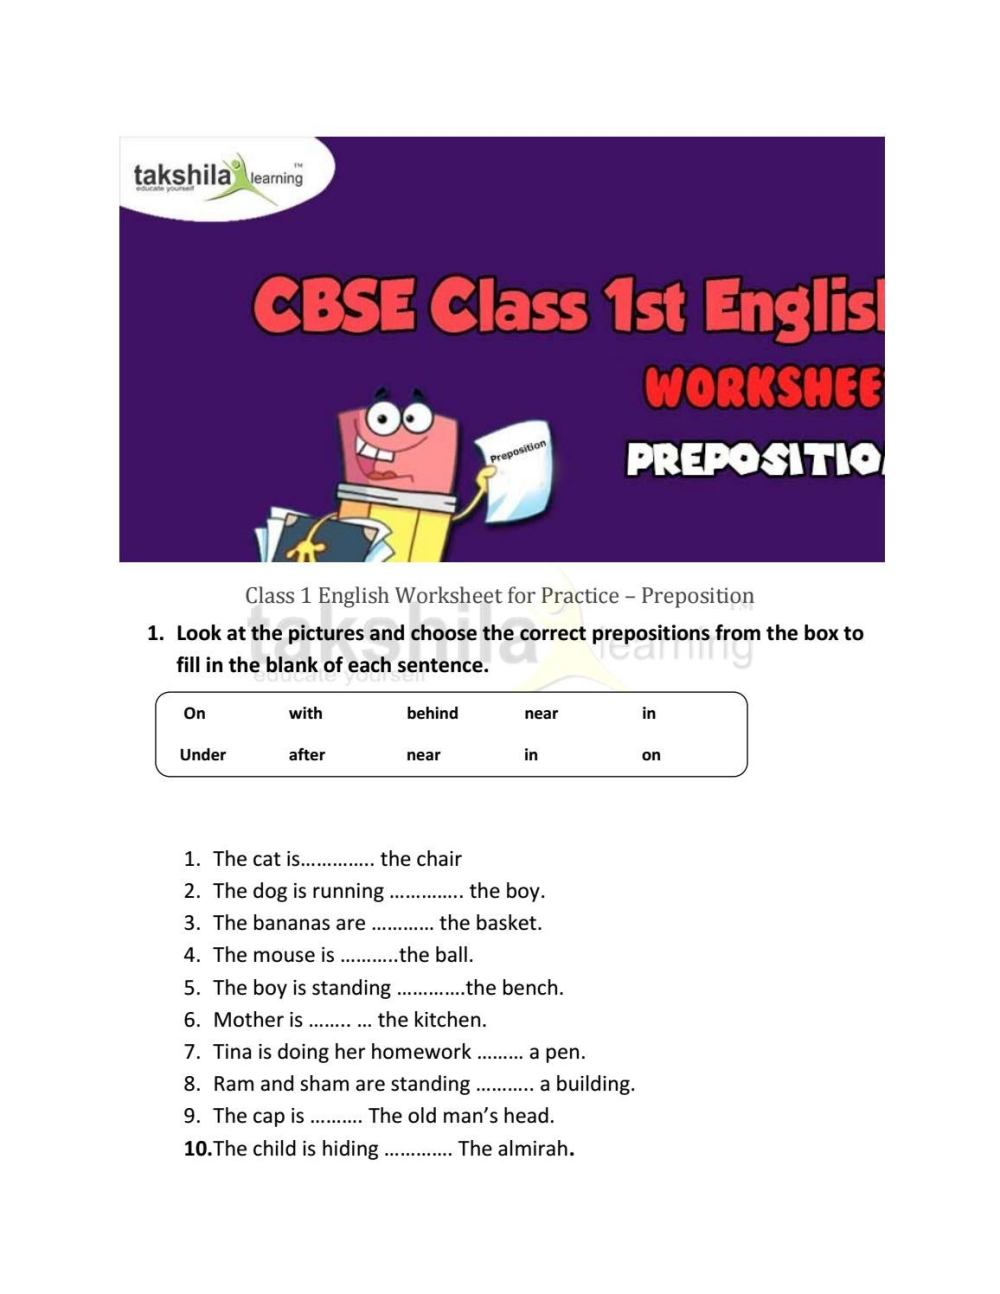 medium resolution of Class 1 english worksheet for practice preposition by Takshila learning    Online Classes - issuu